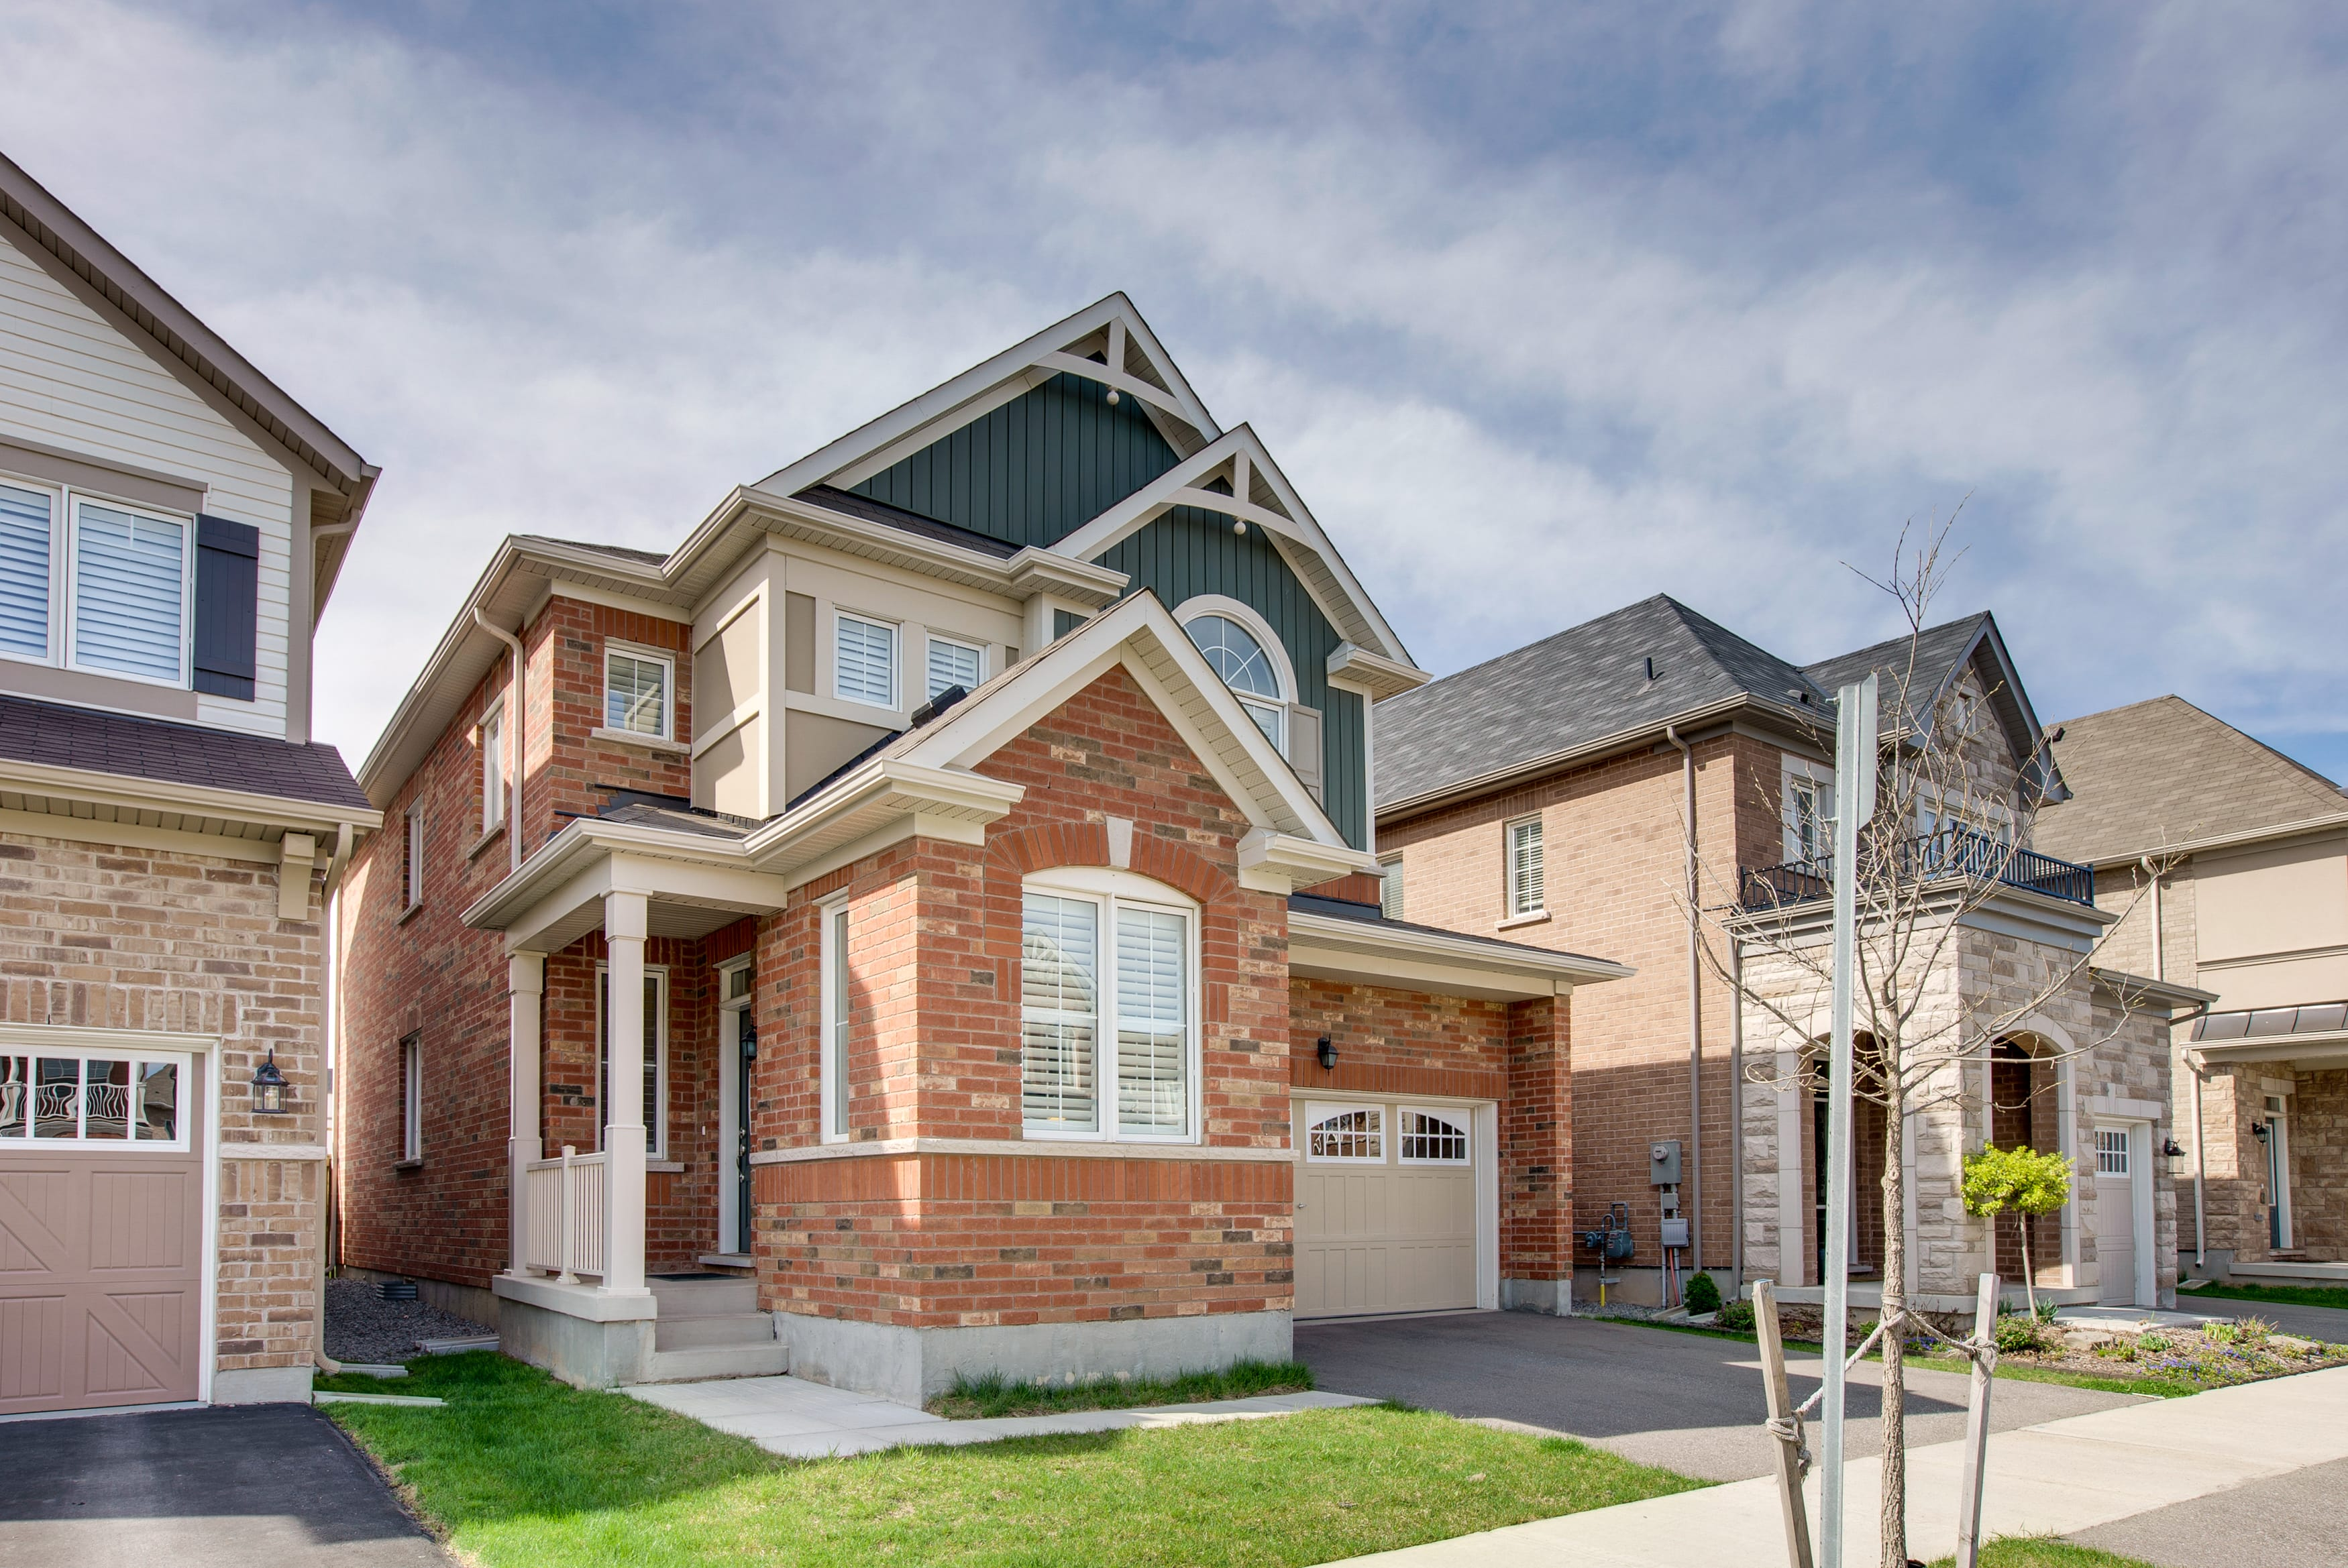 707 Shortreed Cres